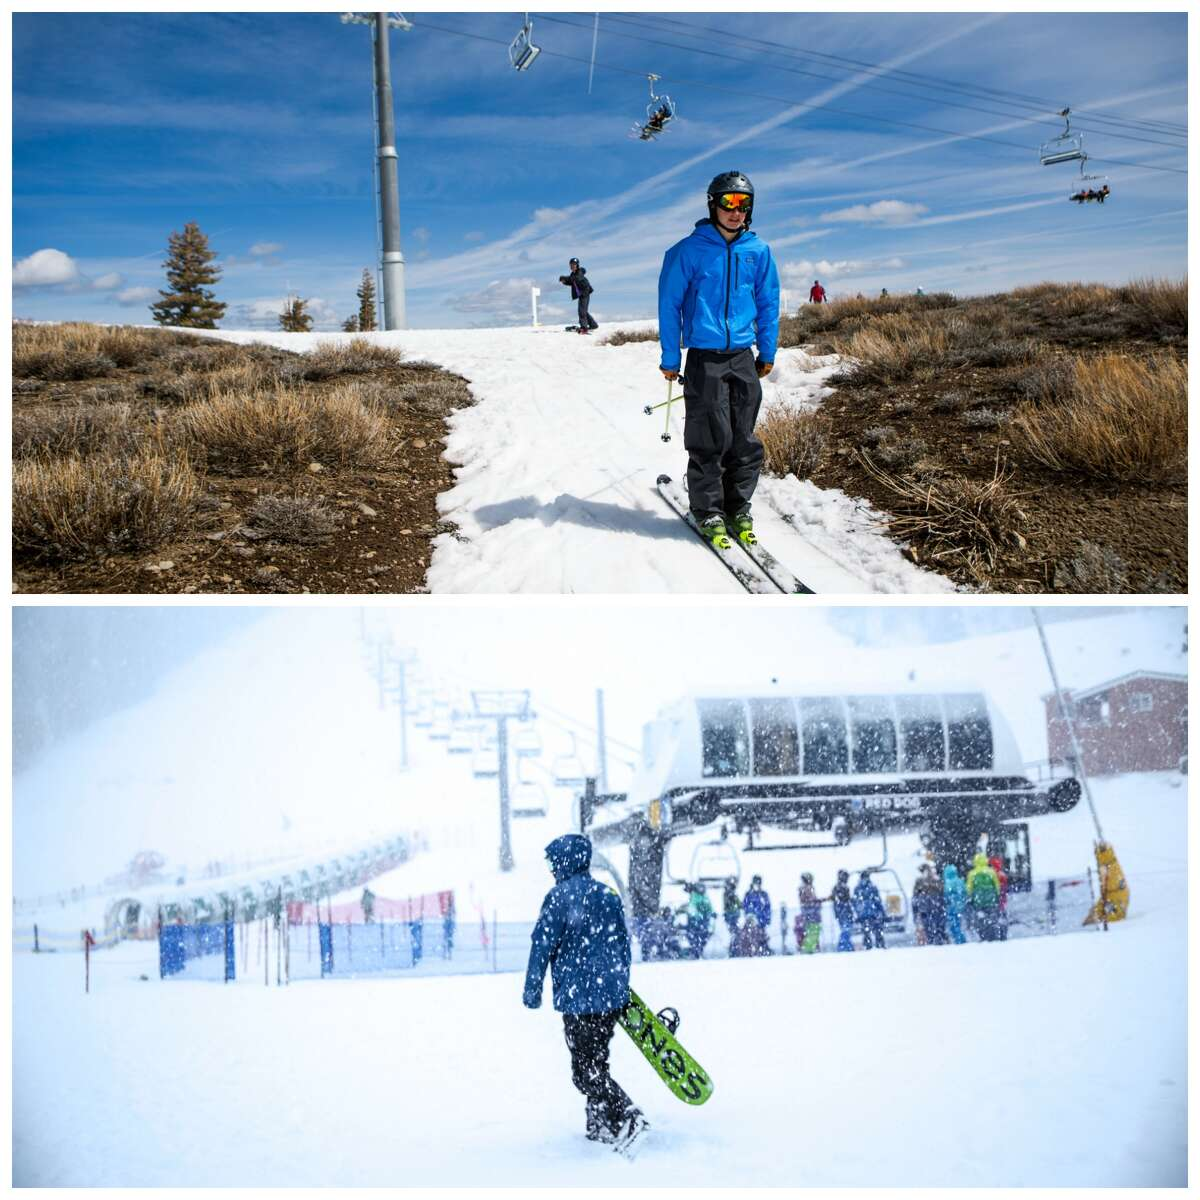 Squaw Valley: Before and after the storm Top: A view of Squaw Valley in March 2016. Bottom: A view of Squaw Valley after the January 2017 storms.